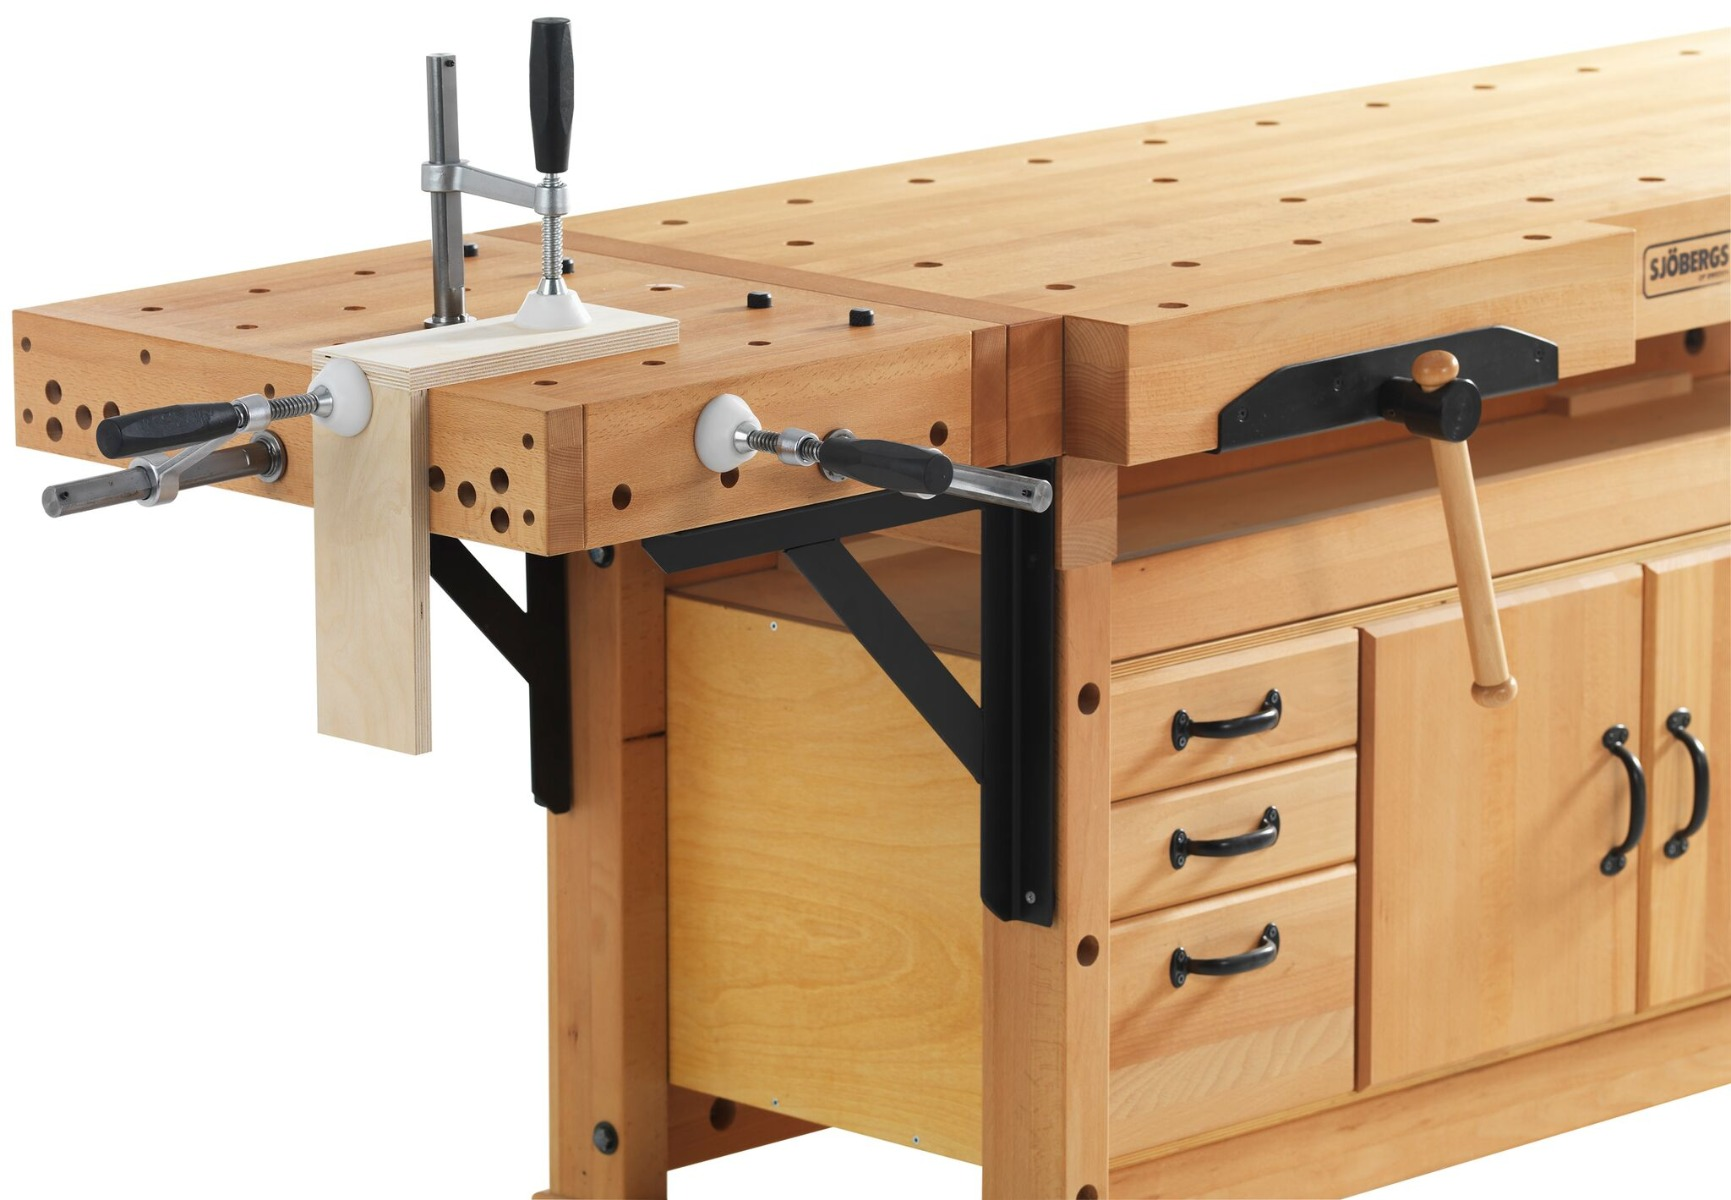 Maximum Heavy Duty Workbench Sjobergs Elite 2500c Combines Workbench Clamping Platform To